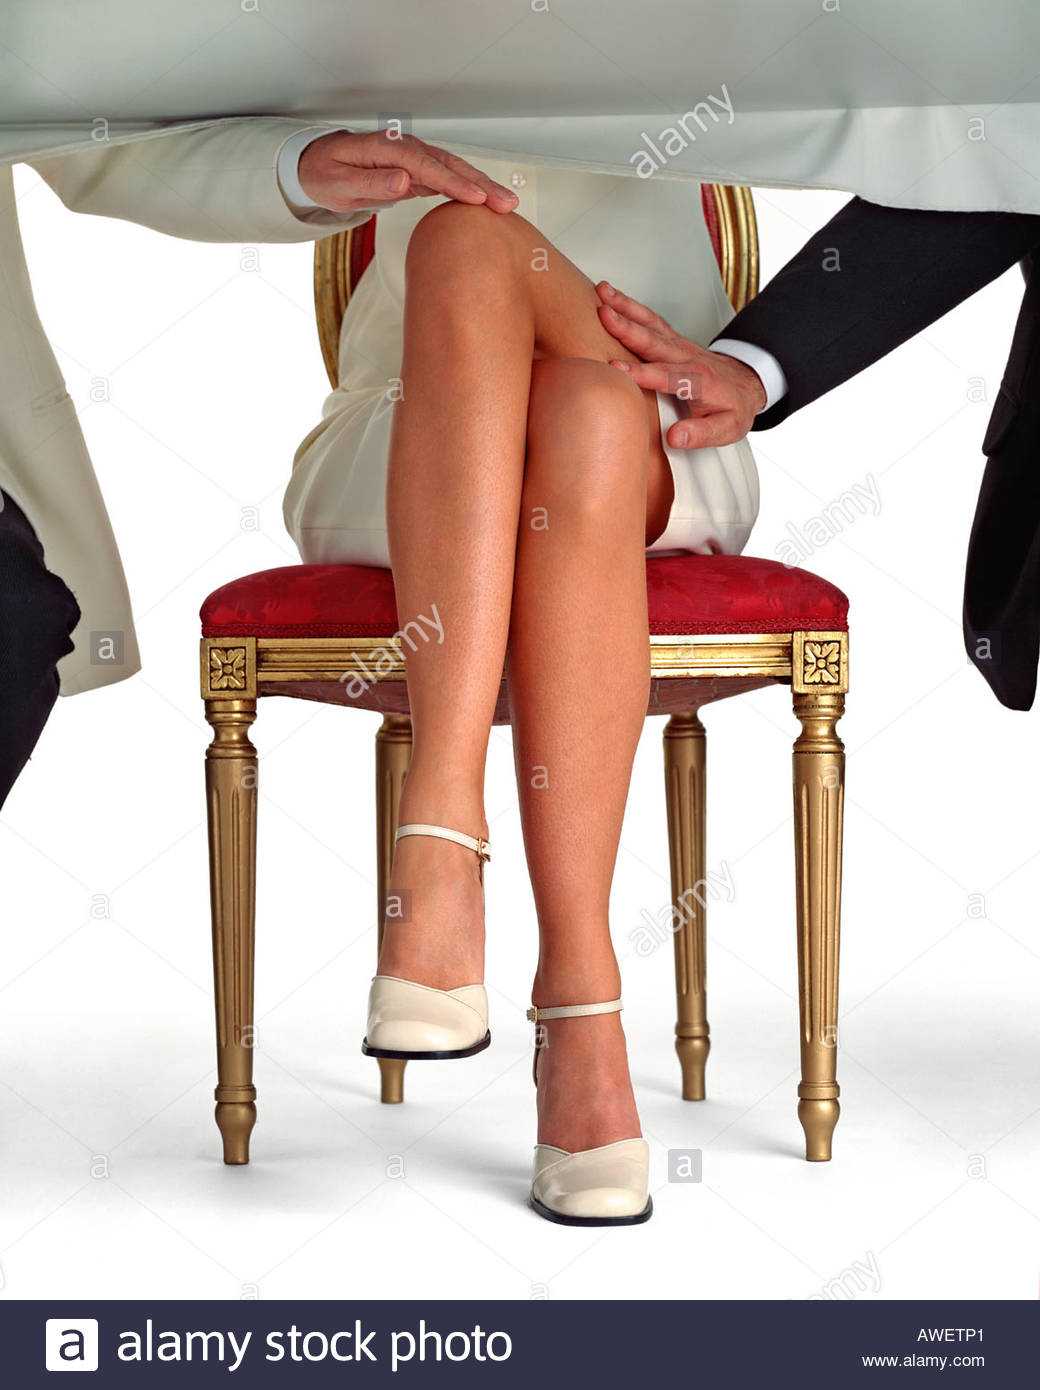 Womans legs crossed under a table while the men each side touch